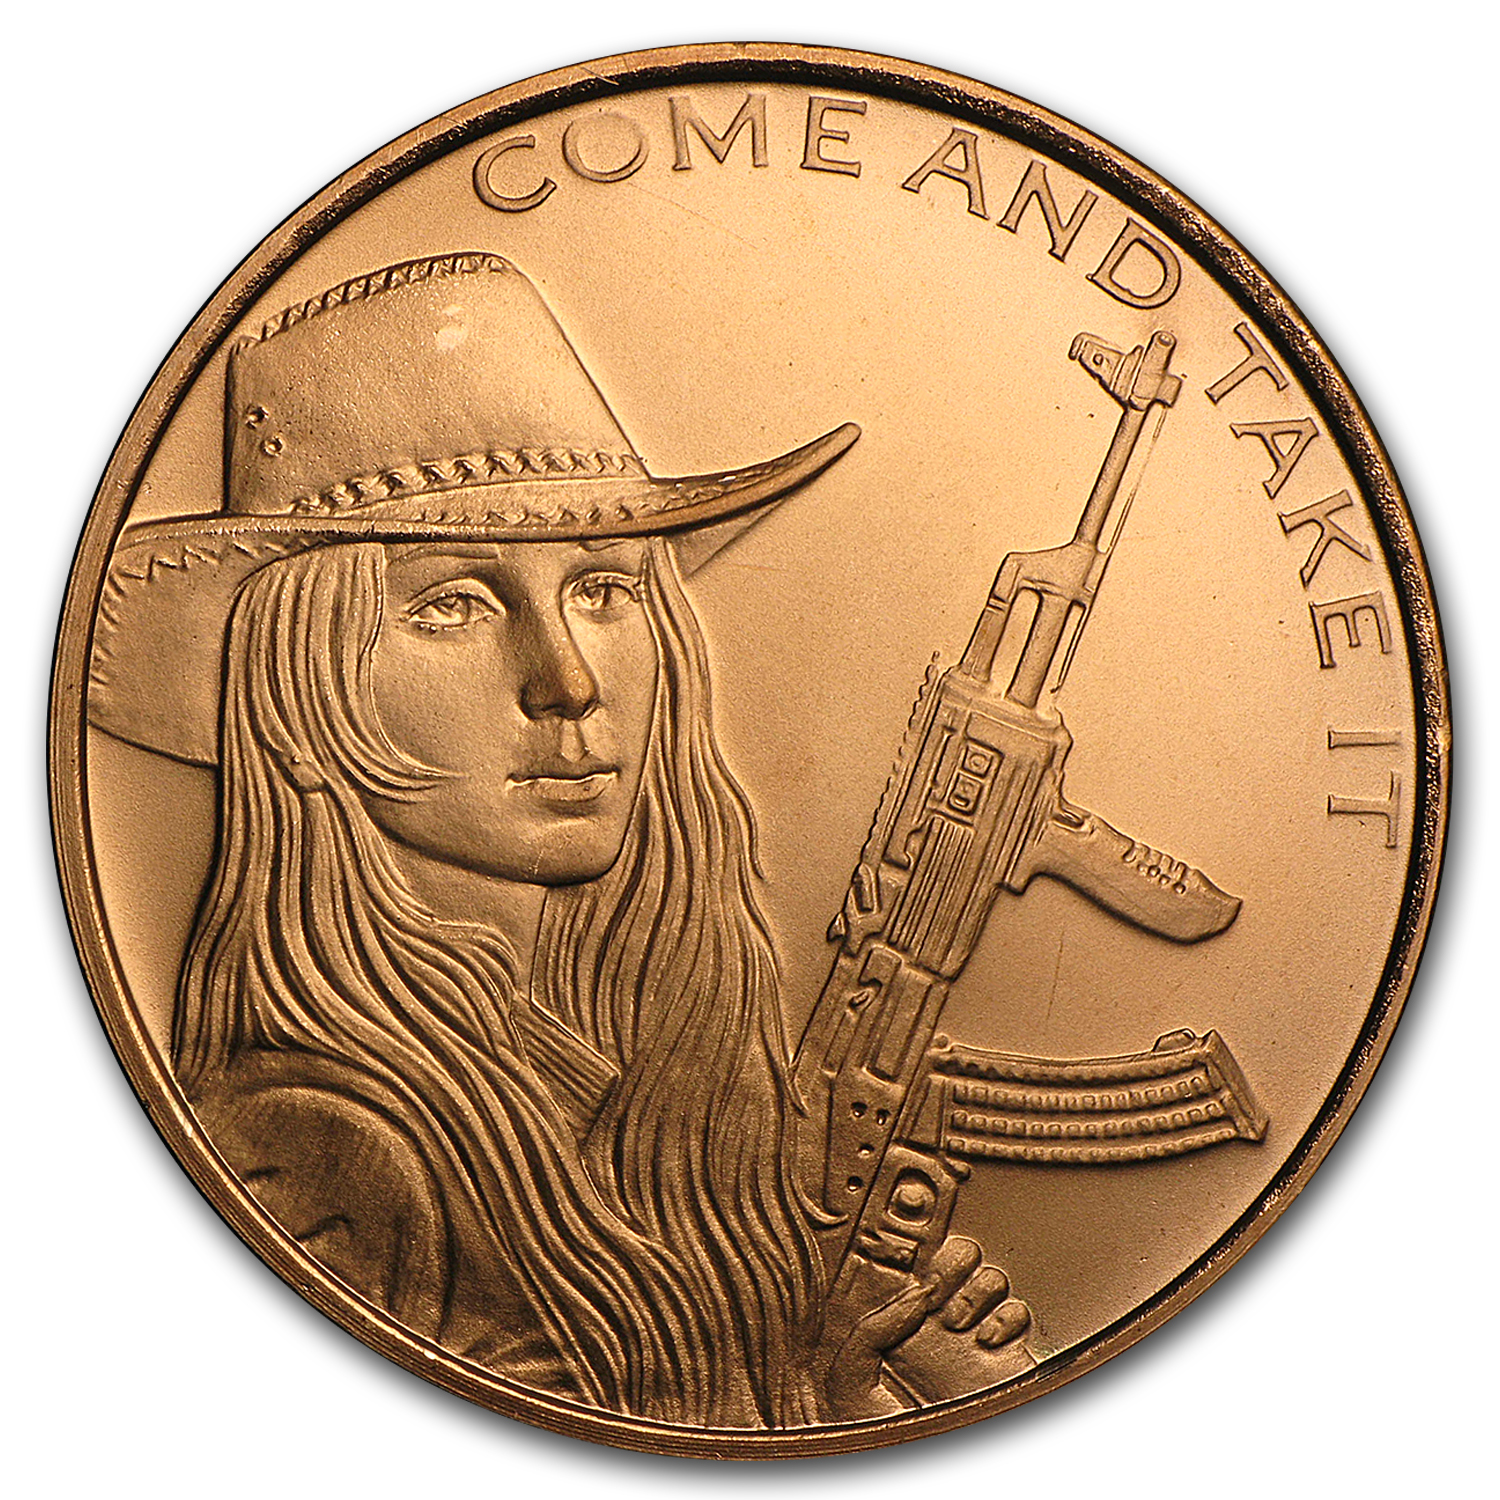 2016 1 oz Copper Round - Come and Take It